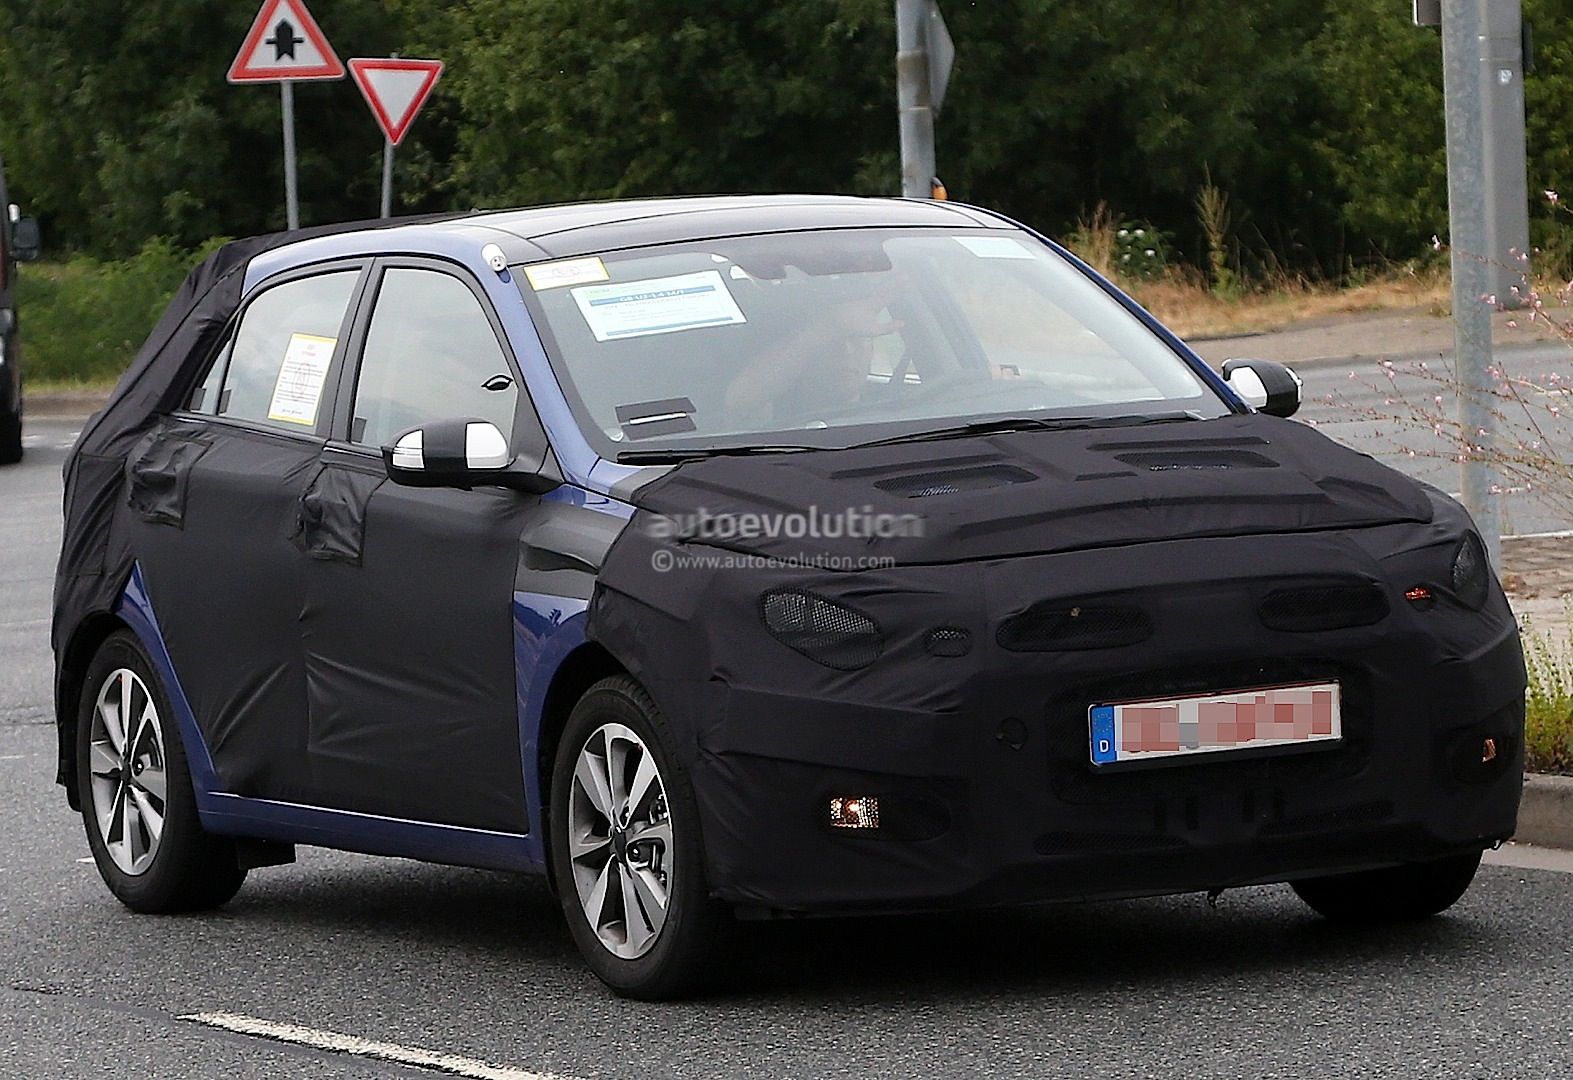 spyshots new hyundai i20 looks promising autoevolution. Black Bedroom Furniture Sets. Home Design Ideas